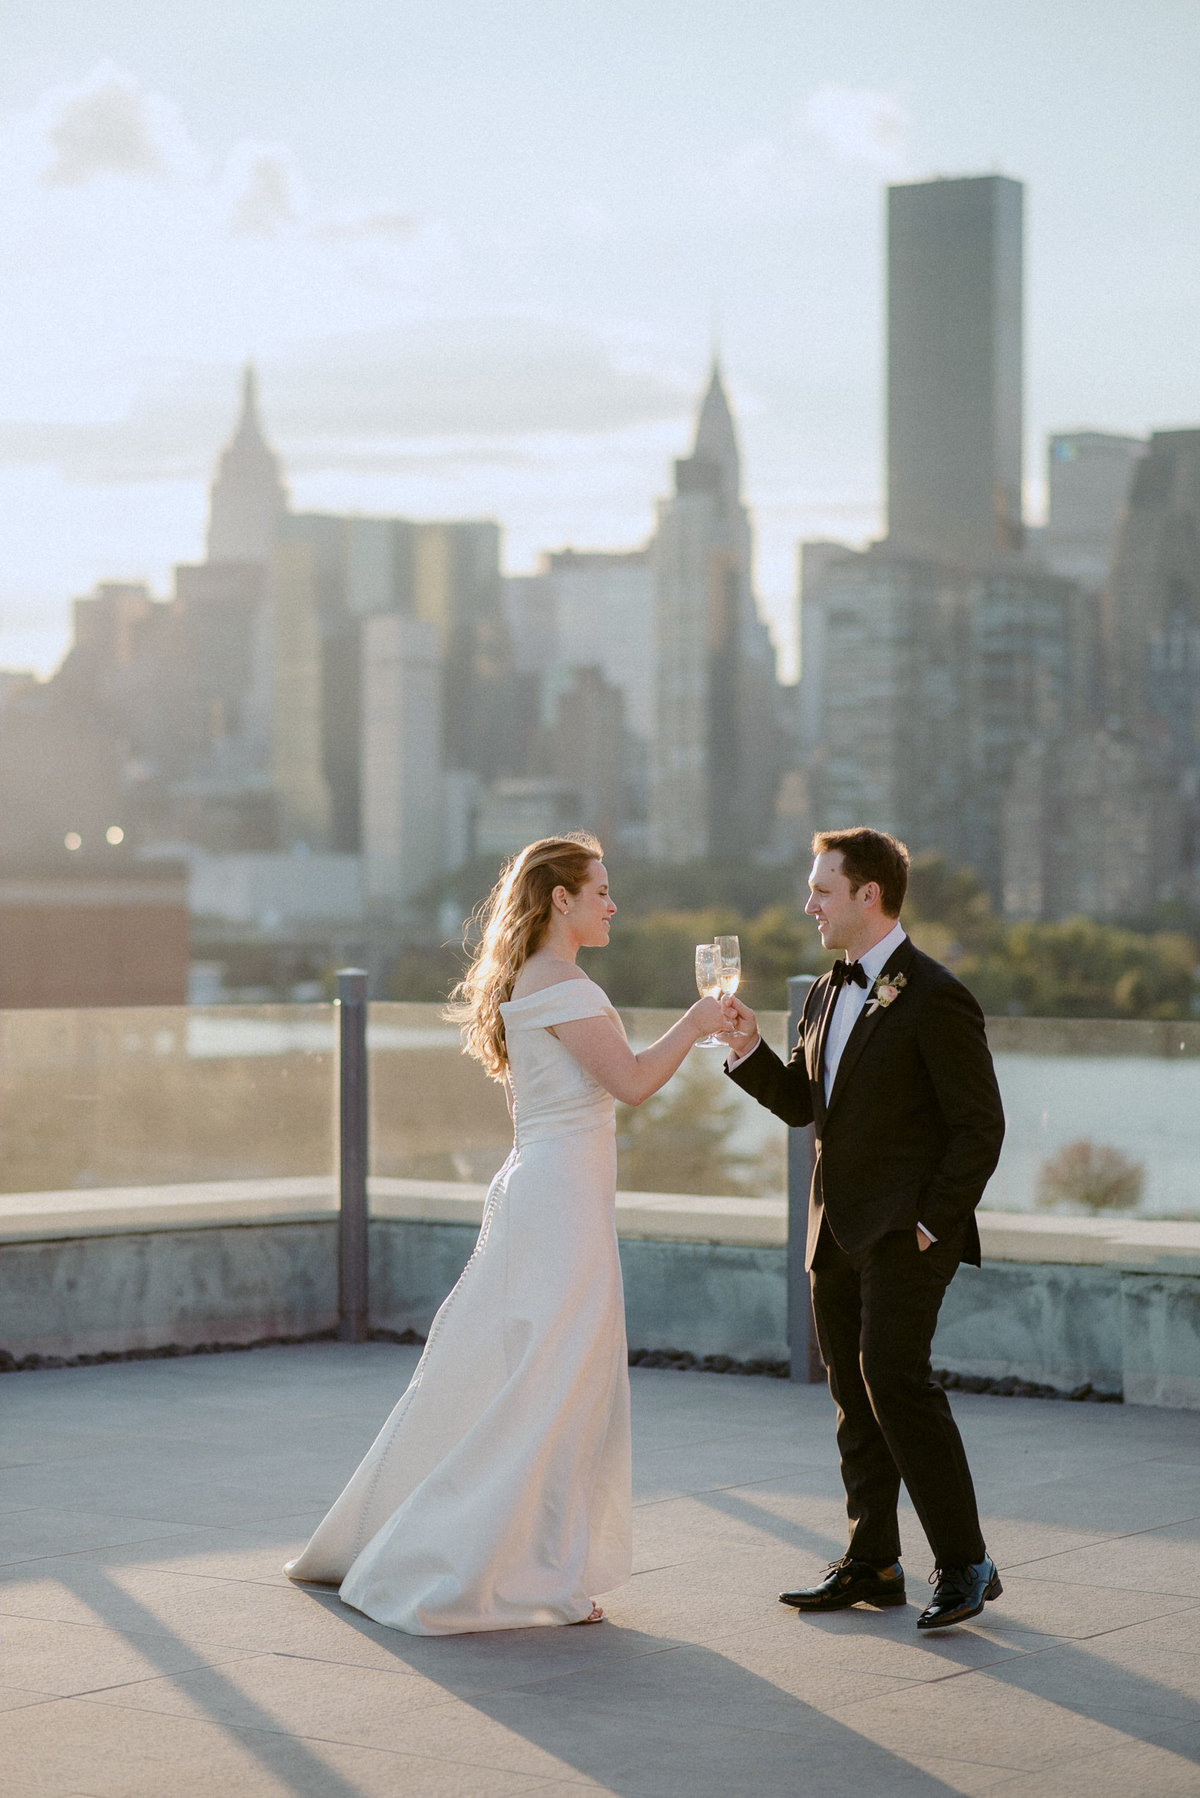 bordone-lic-brooklyn-queens-wedding-photographer-0021